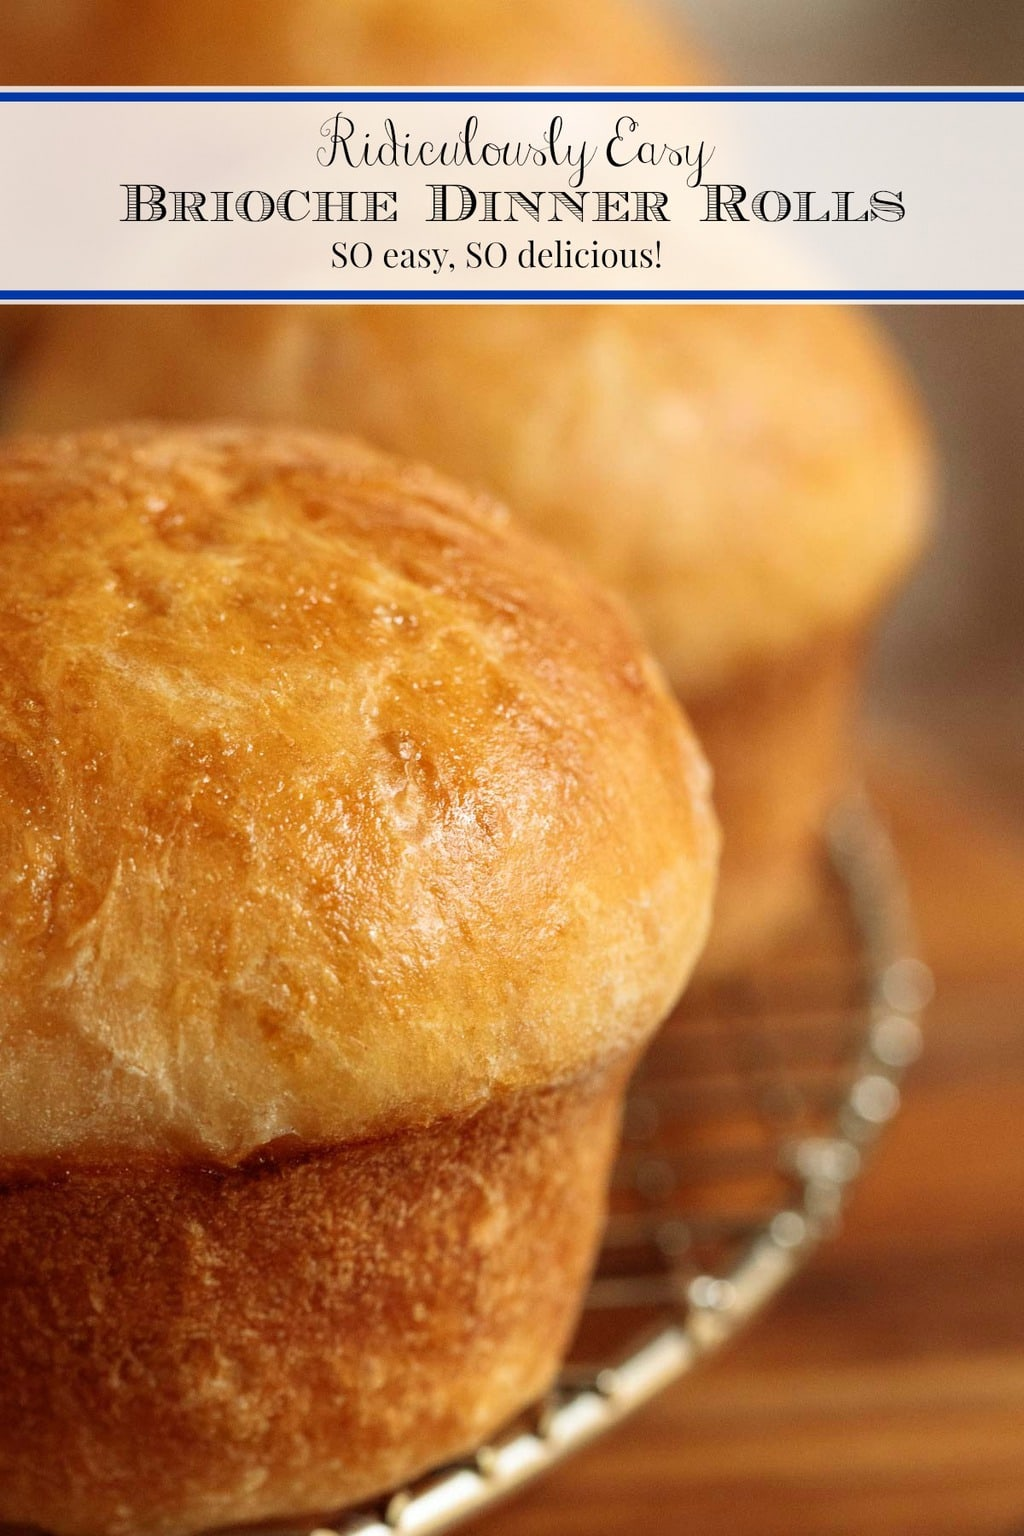 These Ridiculously Easy Brioche Dinner Rolls almost make themselves! There\'s 15-minutes light labor on your part (no-mixer, no-kneading!) then the yeast and oven work the crazy delicious magic! #easydinnerrolls, #easybriocherolls, #bestdinnerrolls